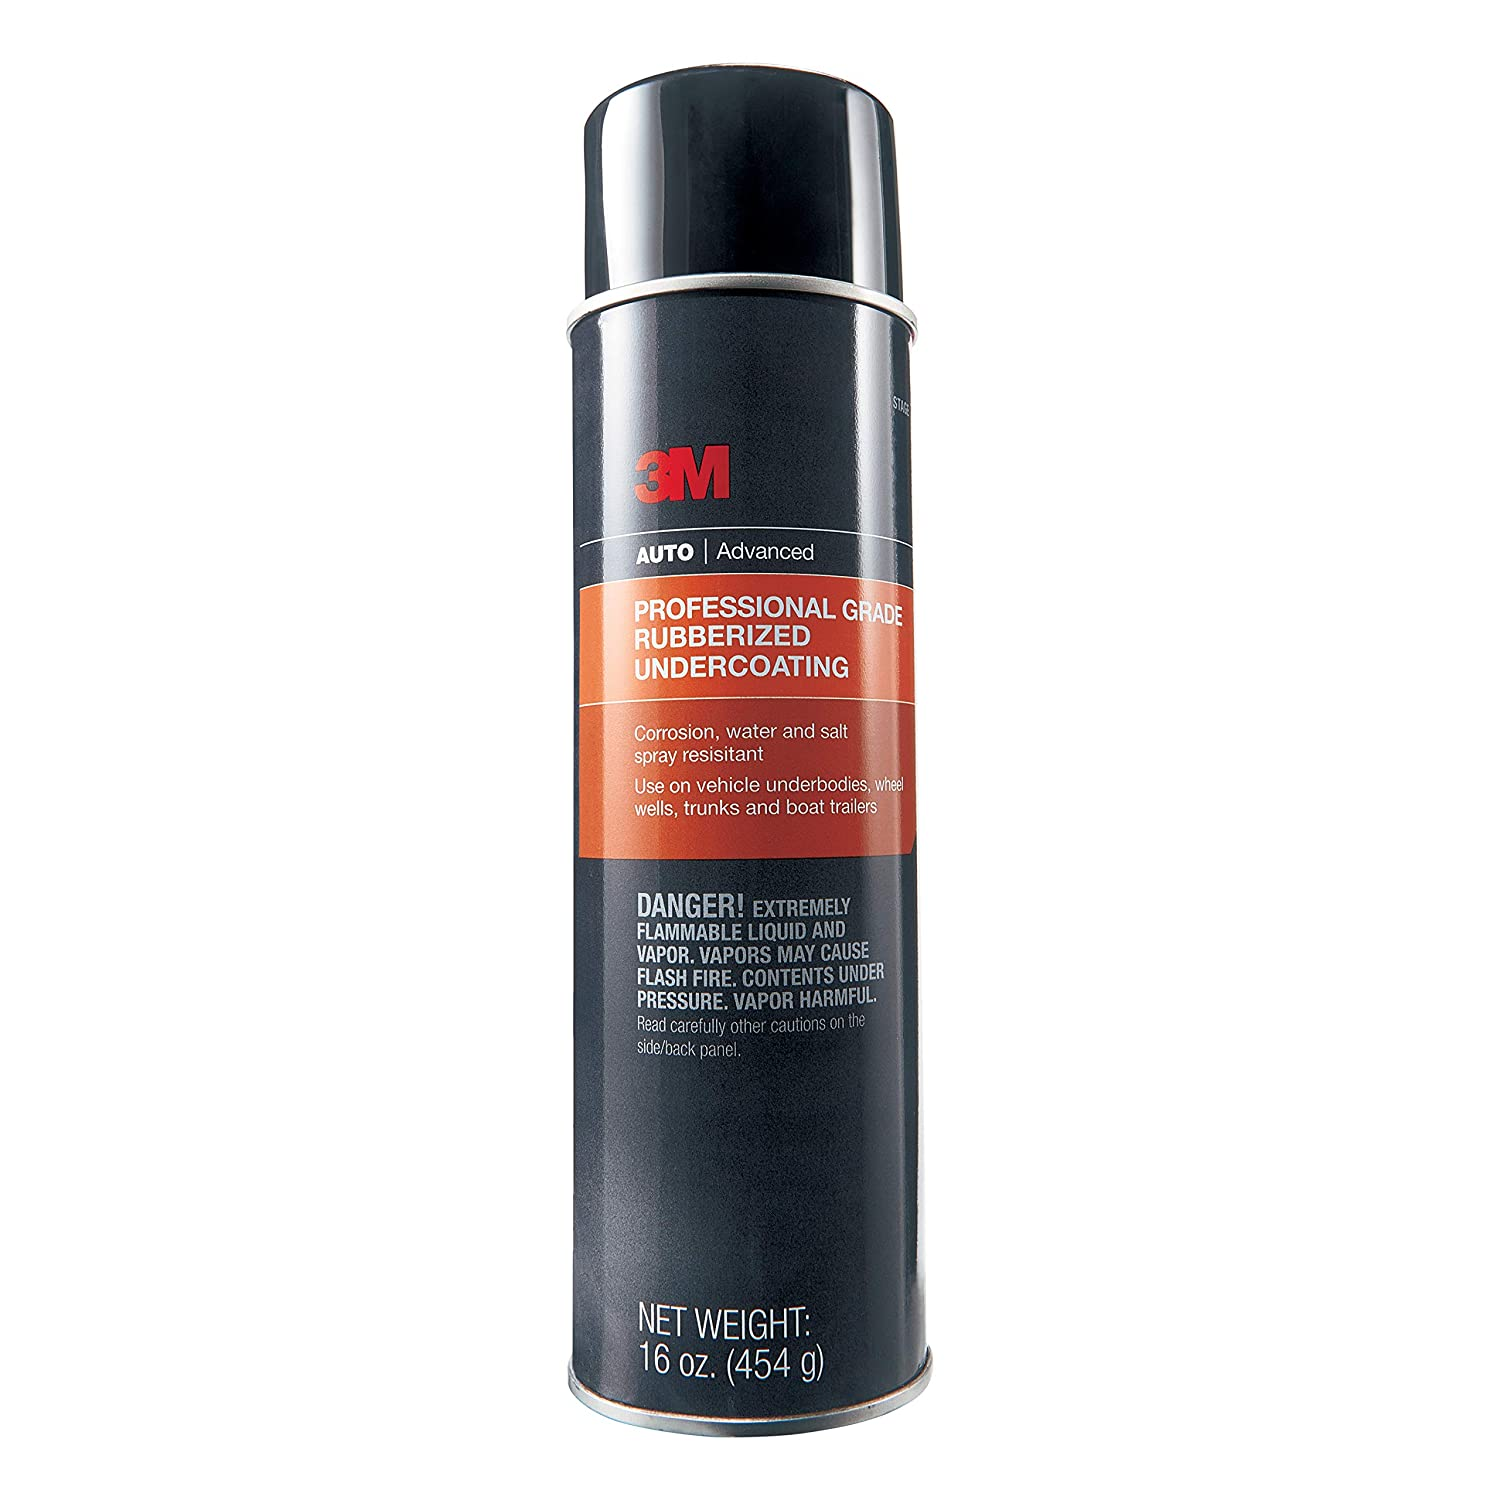 3M Professional Grade Rubberized Undercoating (Six Pack)}